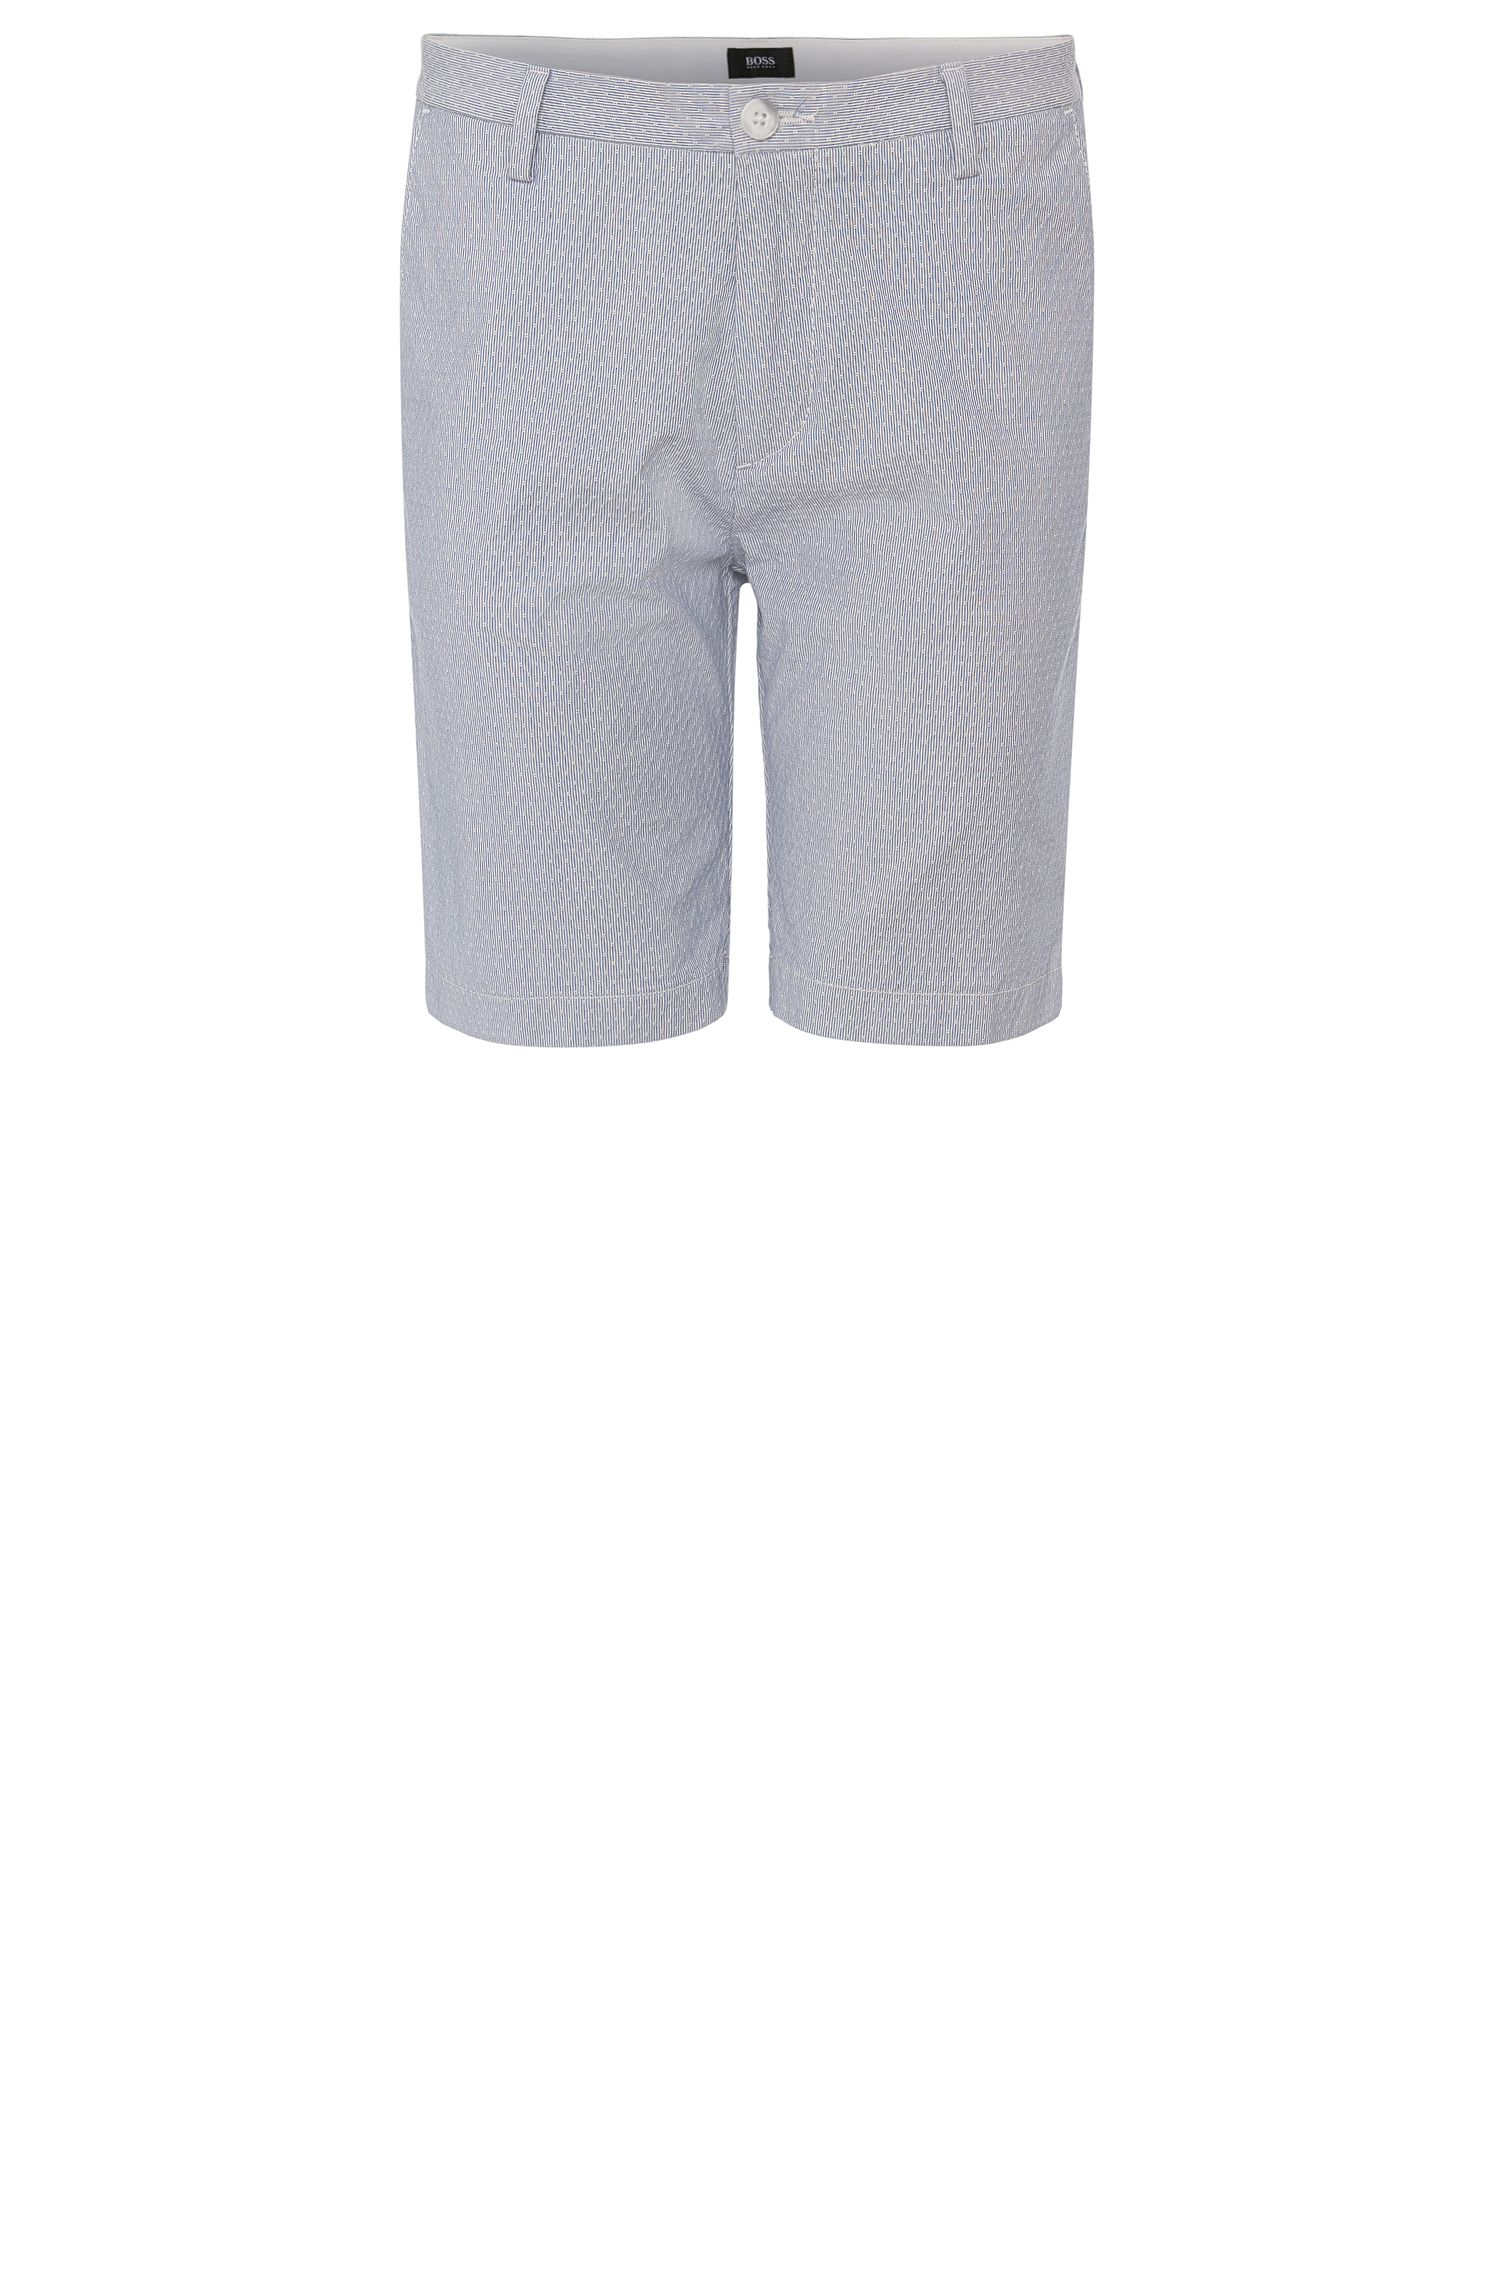 'RiceShort-W' | Slim Fit, Stretch Cotton Shorts